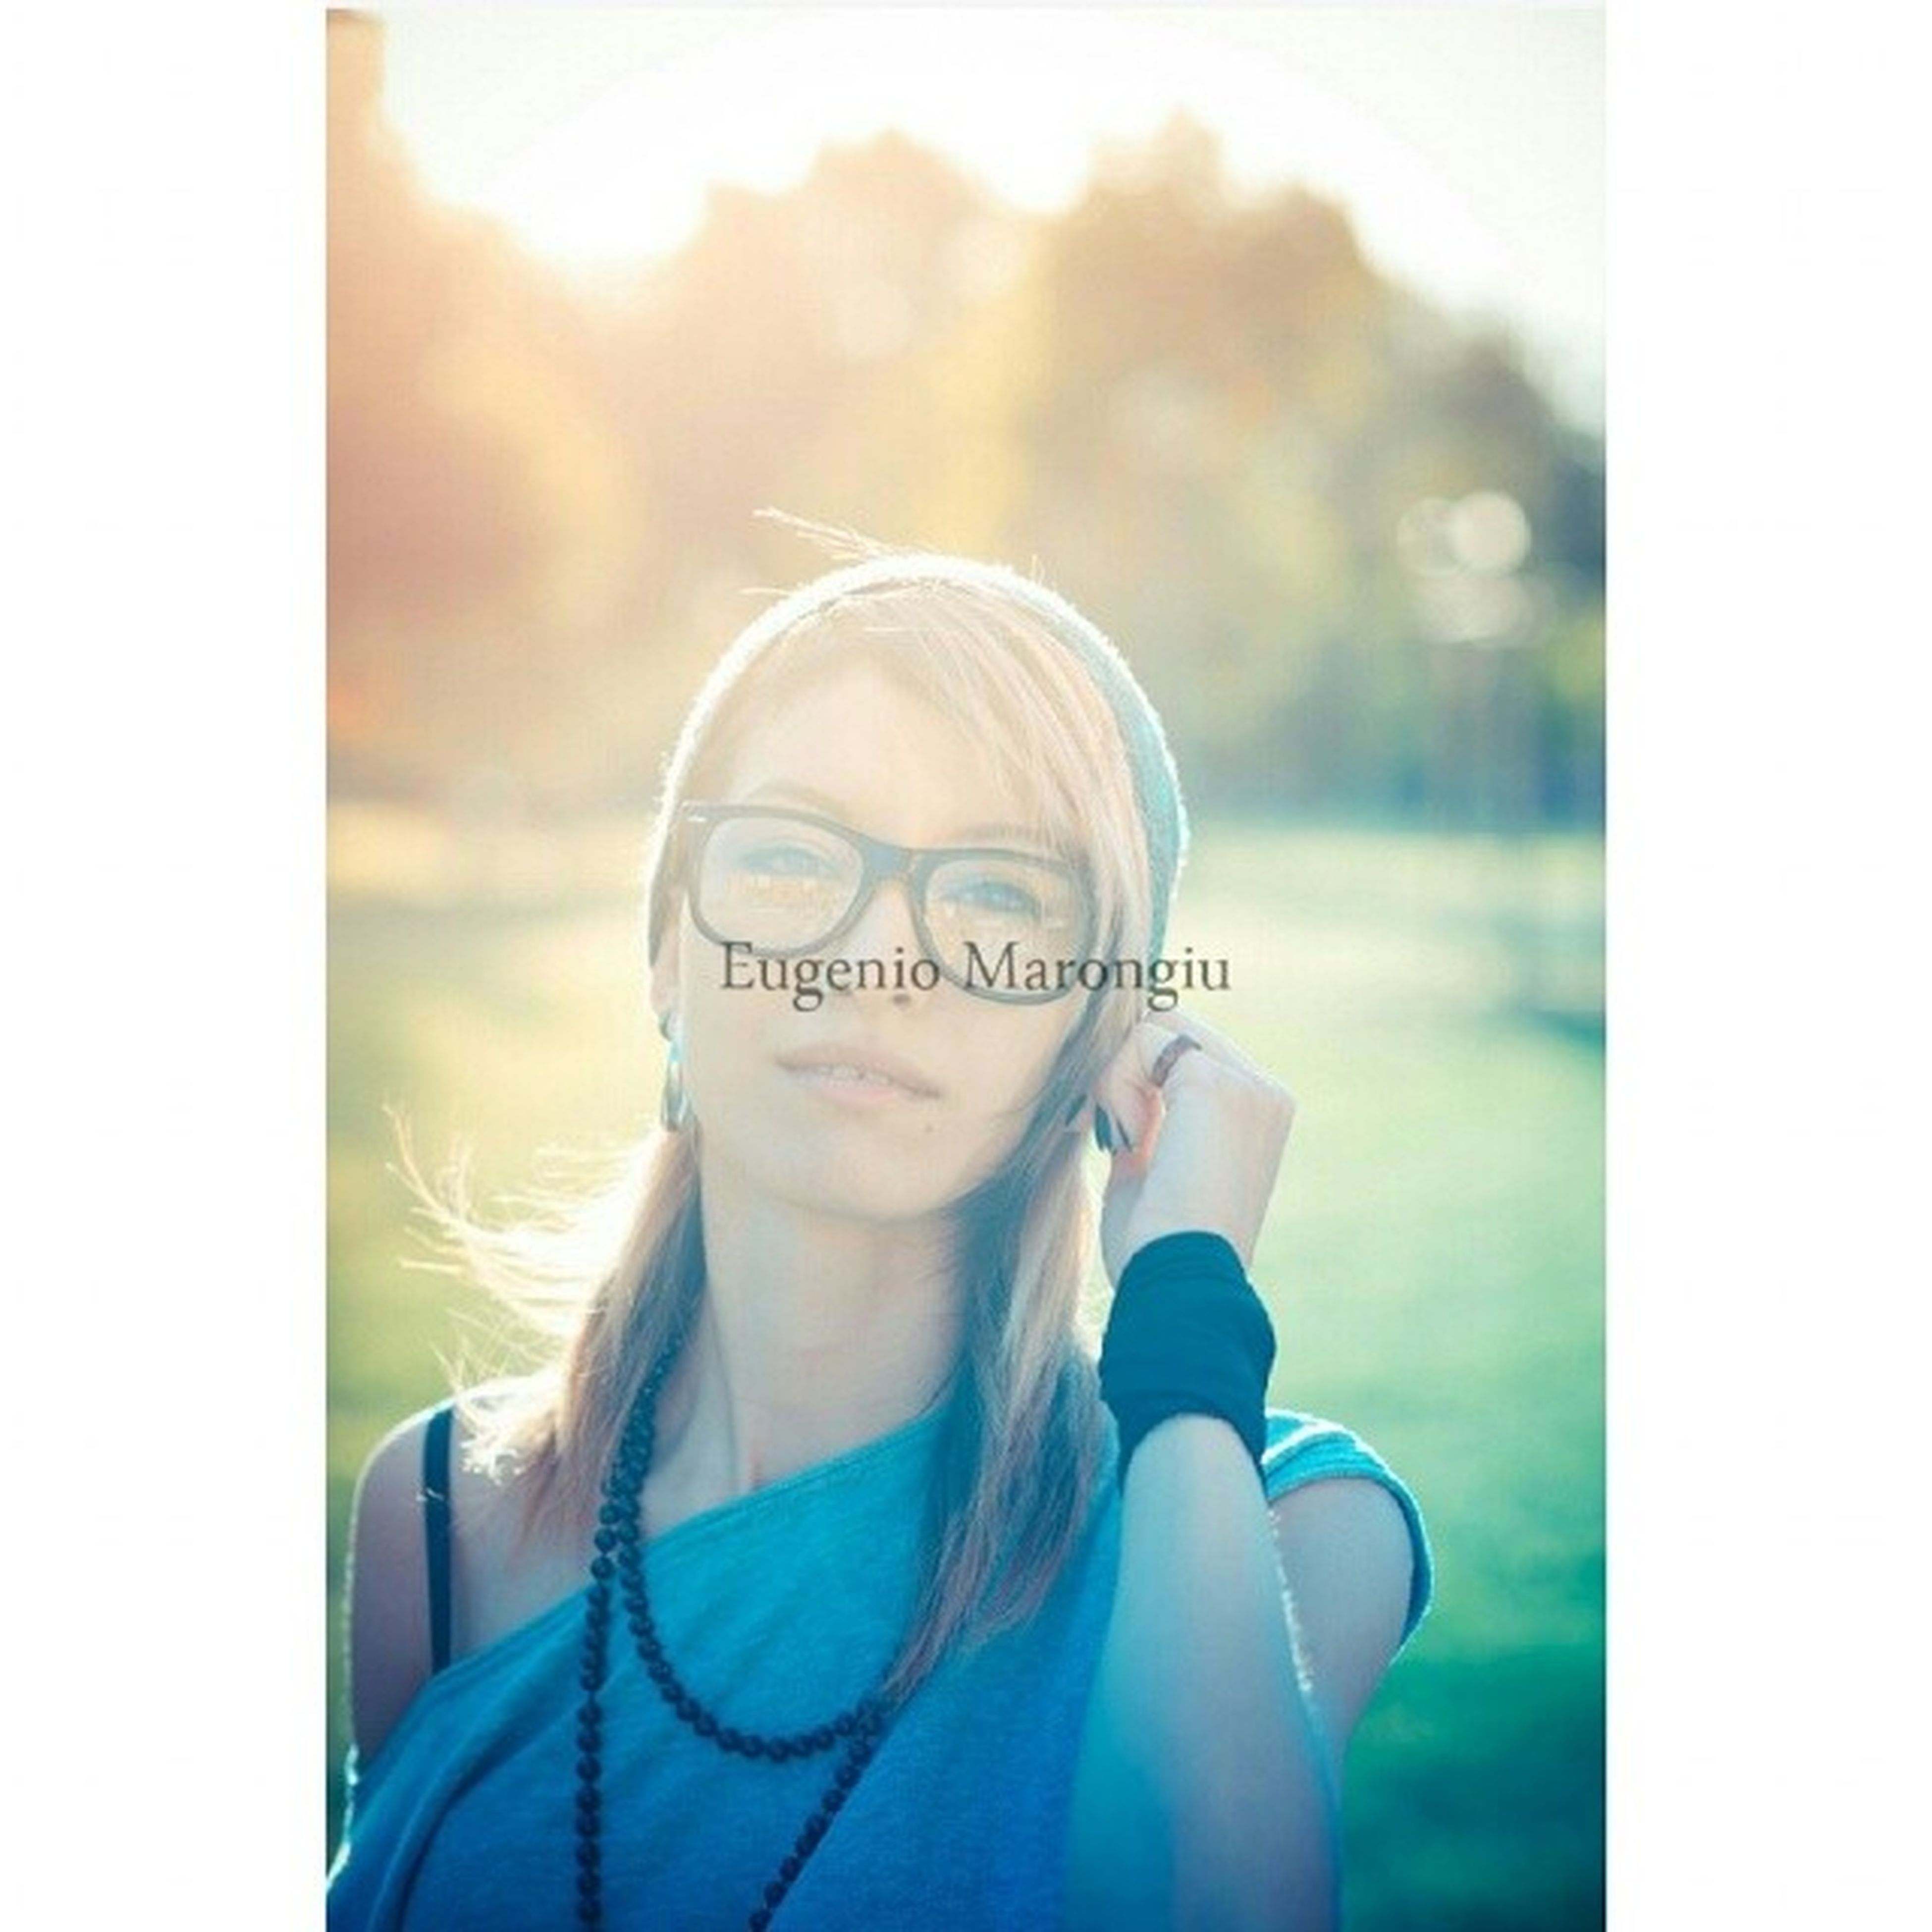 transfer print, headshot, lifestyles, young adult, looking at camera, person, auto post production filter, portrait, head and shoulders, leisure activity, front view, sunglasses, close-up, focus on foreground, young women, casual clothing, smiling